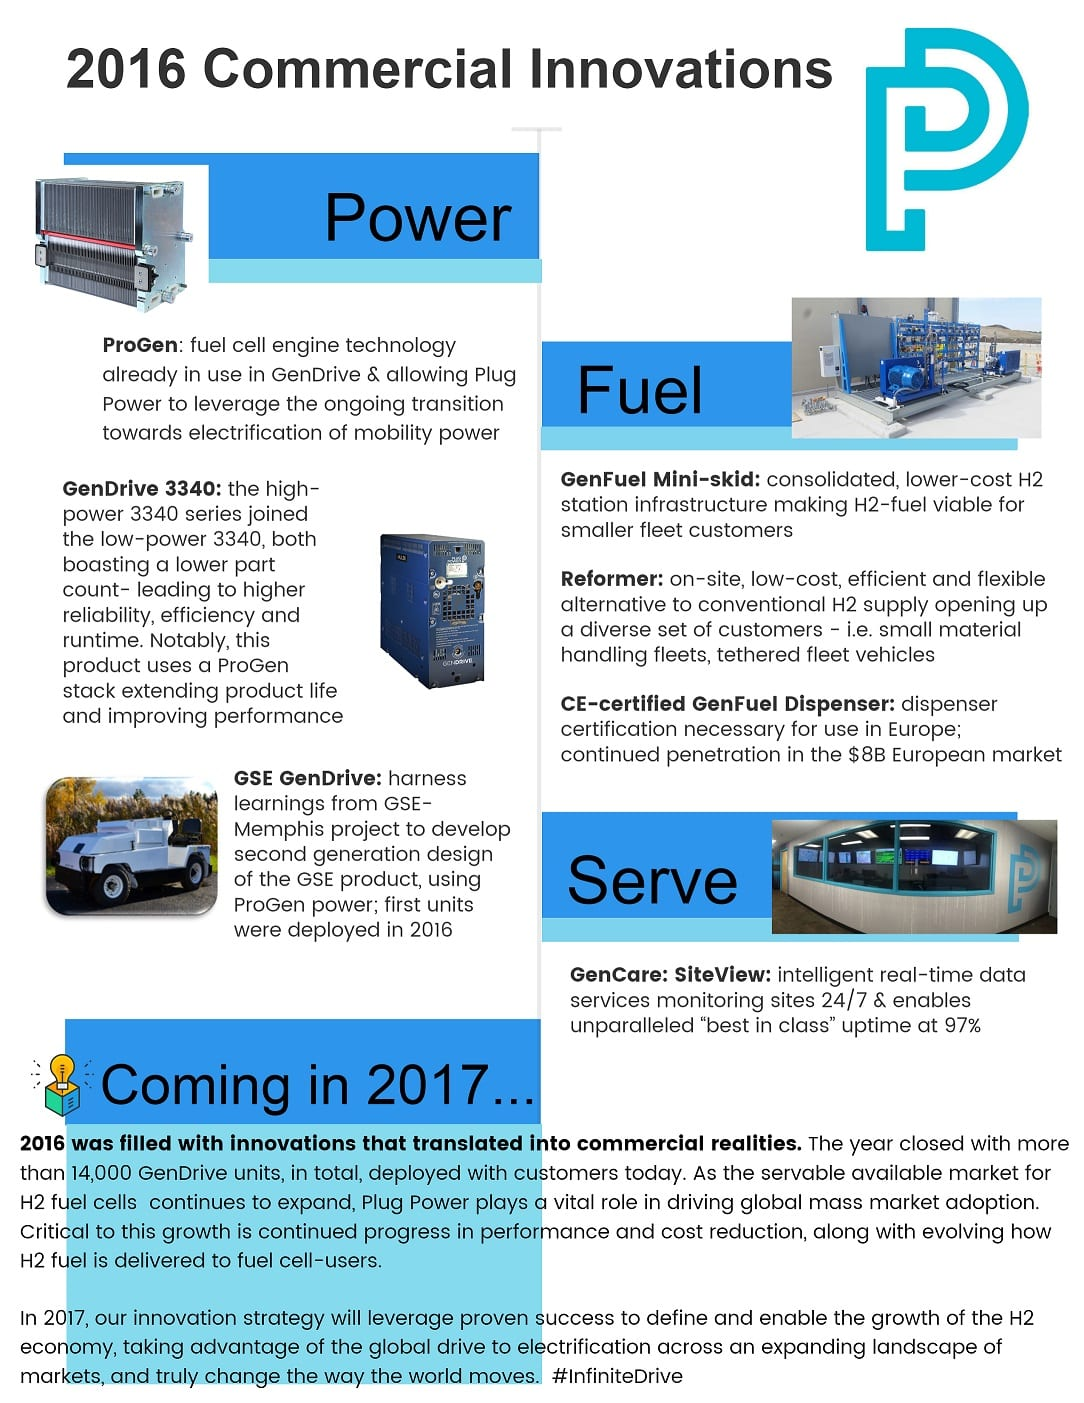 Plug Power 2016 fuel cell innovation